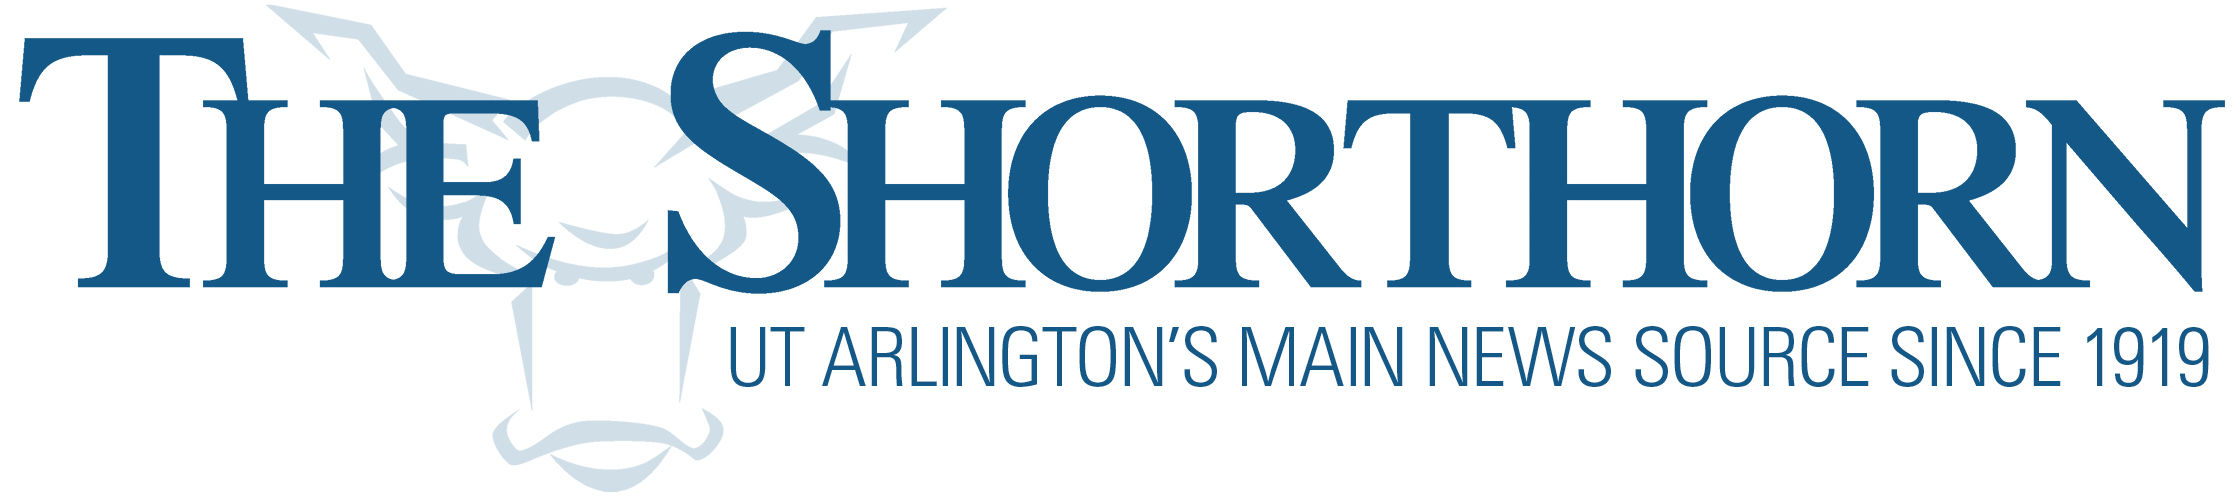 The Shorthorn - UT Arlington Campus Newspaper Since 1919